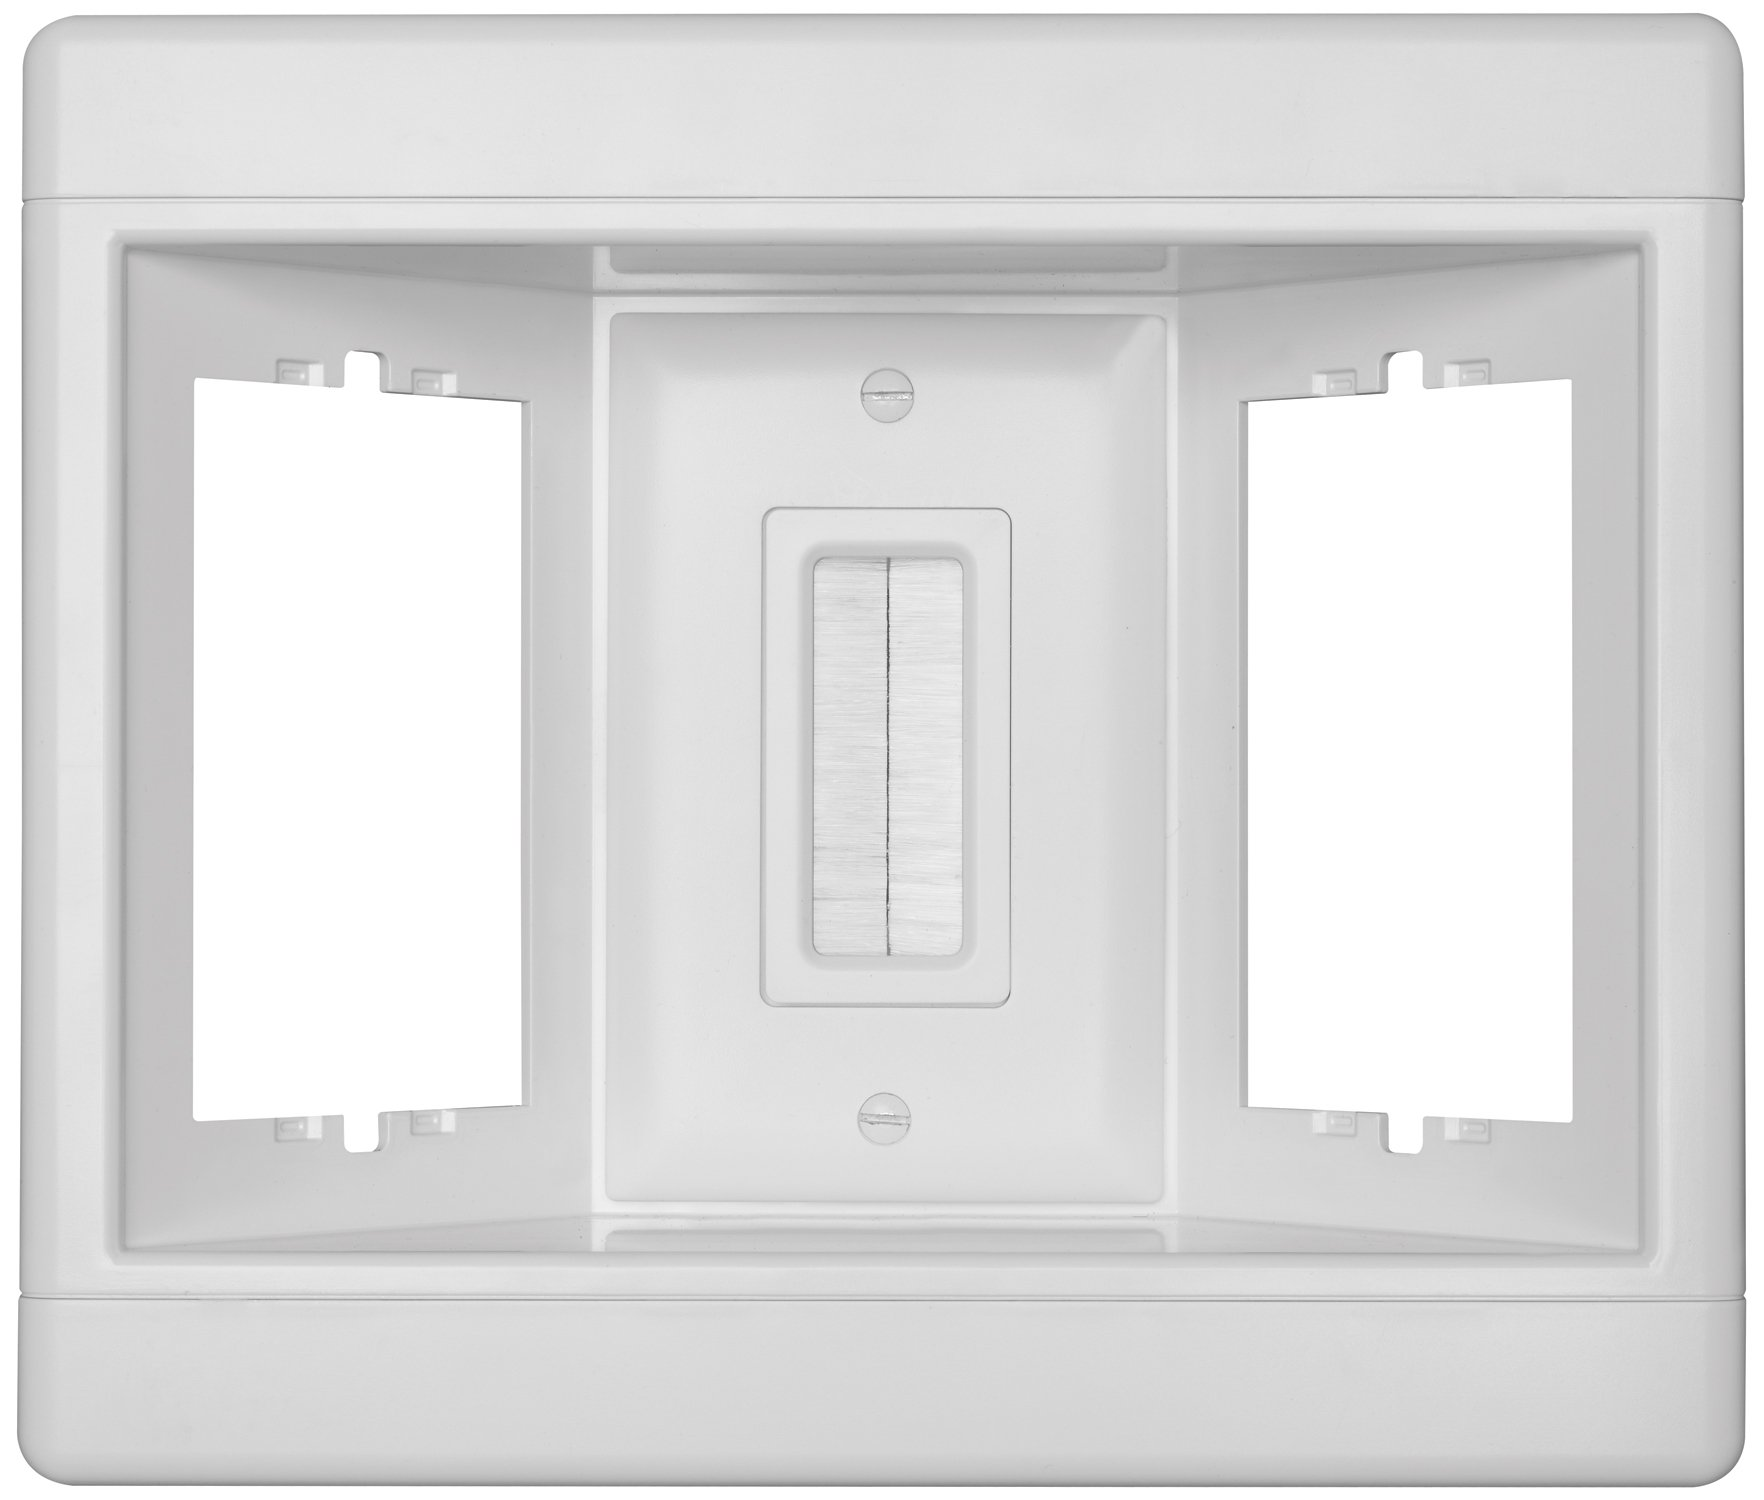 Legrand - Pass & Seymour TV3LVKITWCC2 Recessed Television Box Three Gang Low Voltage Kit Easy Installation by Pass & Seymour